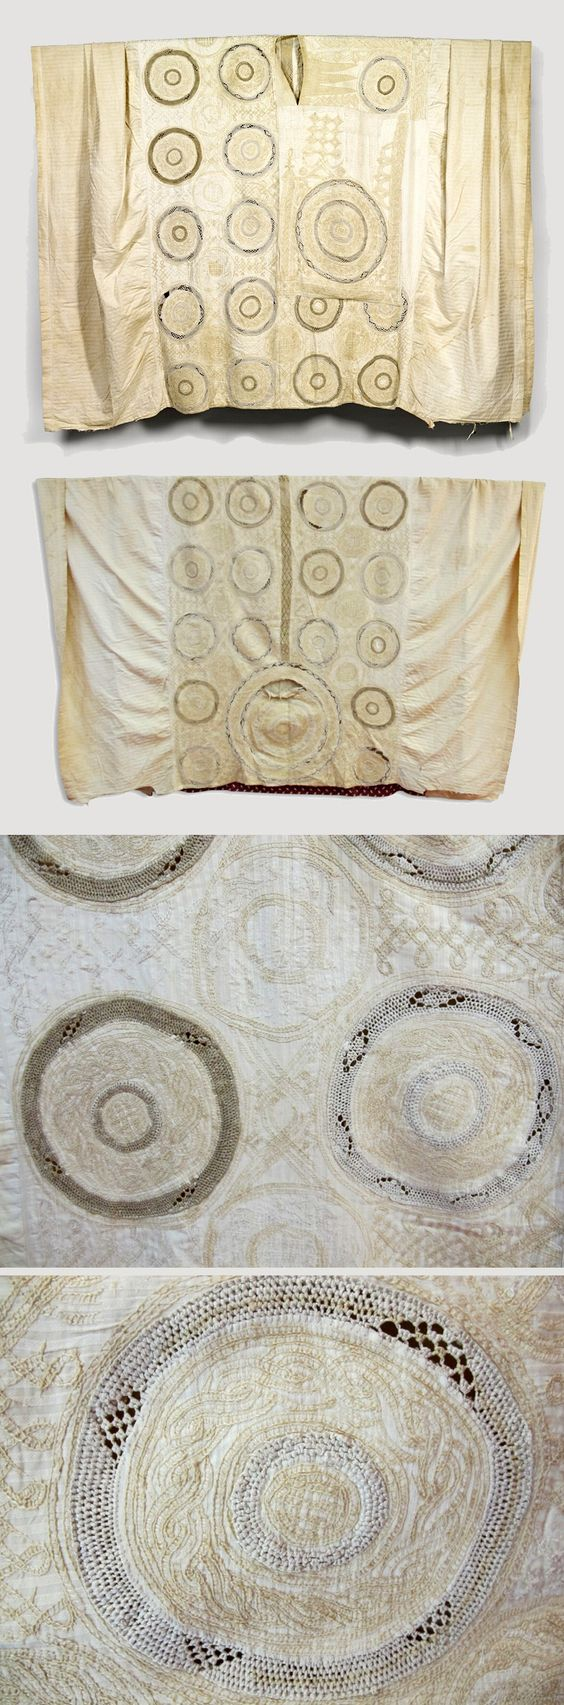 Africa   Tunic ~ Girke ~ from the Fulani people of Cameroon   Embroidered cotton   ca. prior to 1972 // 70.2012.31.149